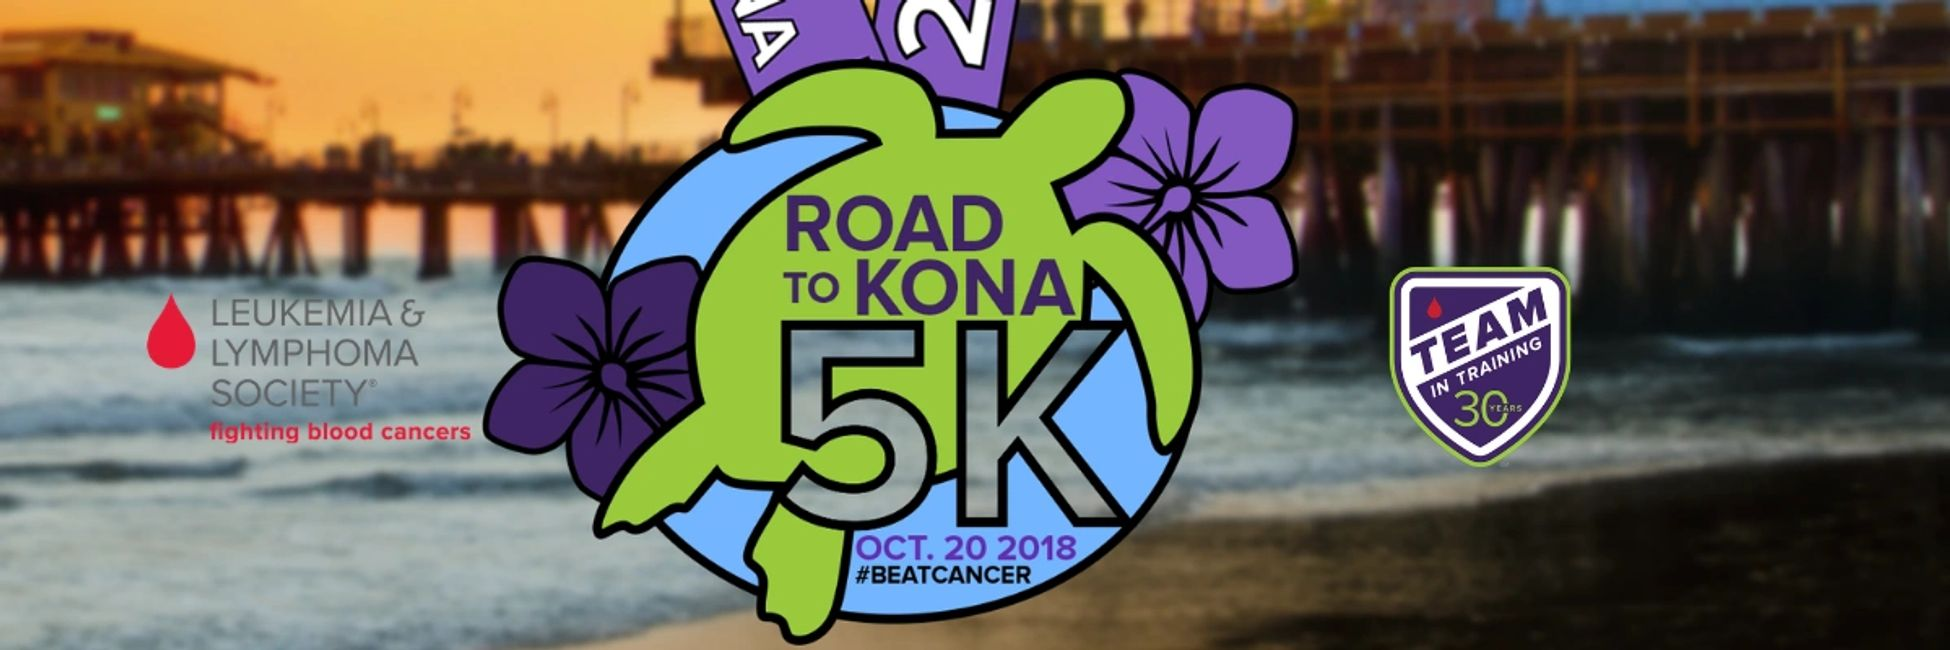 Road to Kona 5k